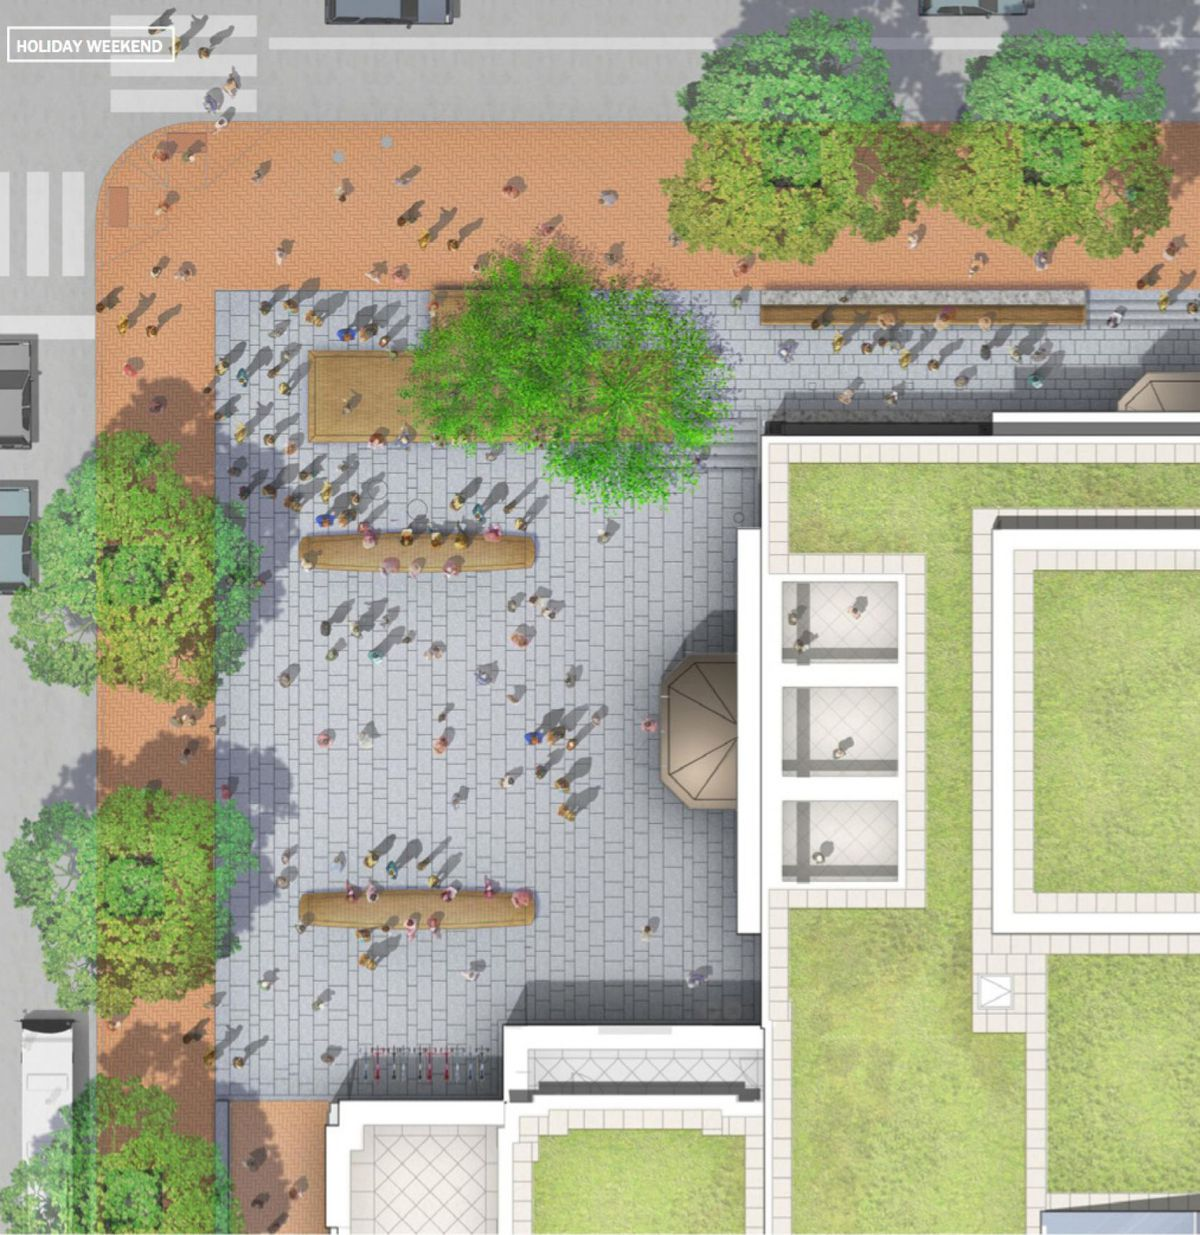 A rendering of the public plaza in front of the Museum of the American Revolution in Old City, Philadelphia.